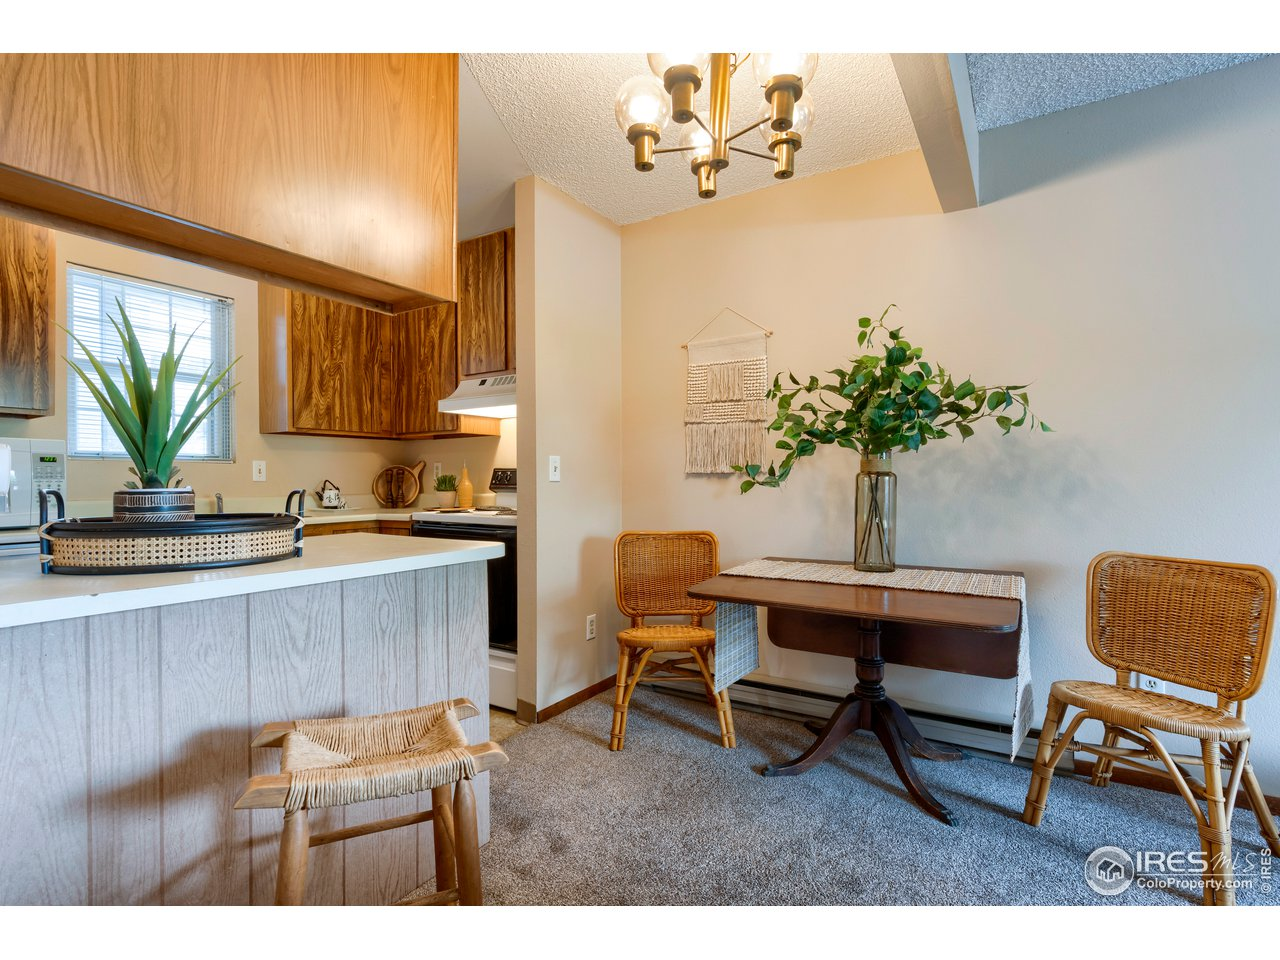 Kitchen peninsula & small dining space